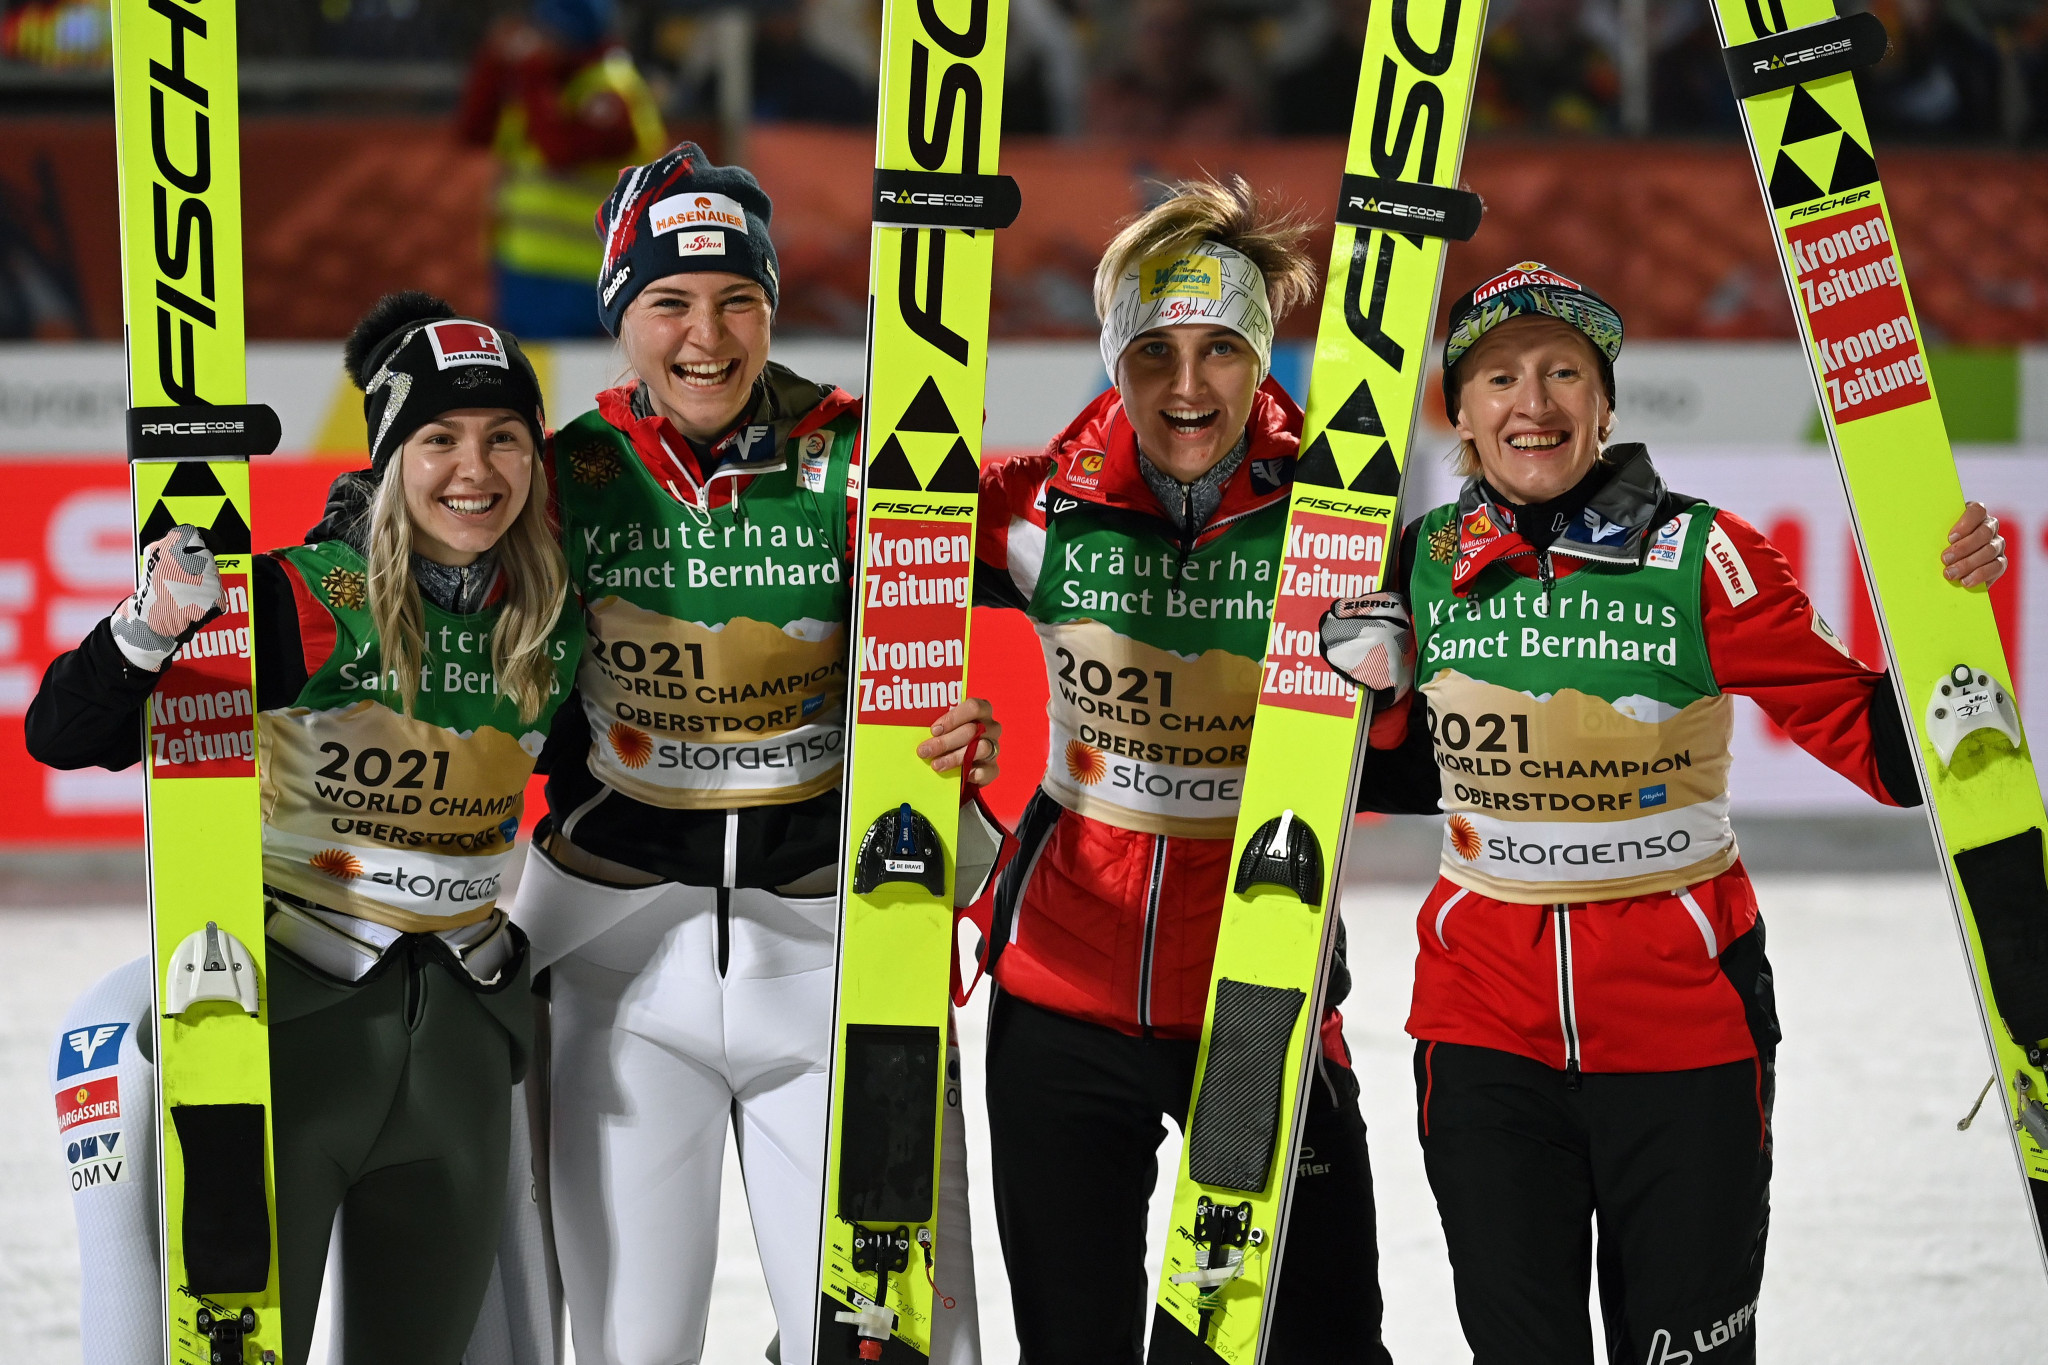 Austria won the women's team normal hill ski jumping title ©Getty Images